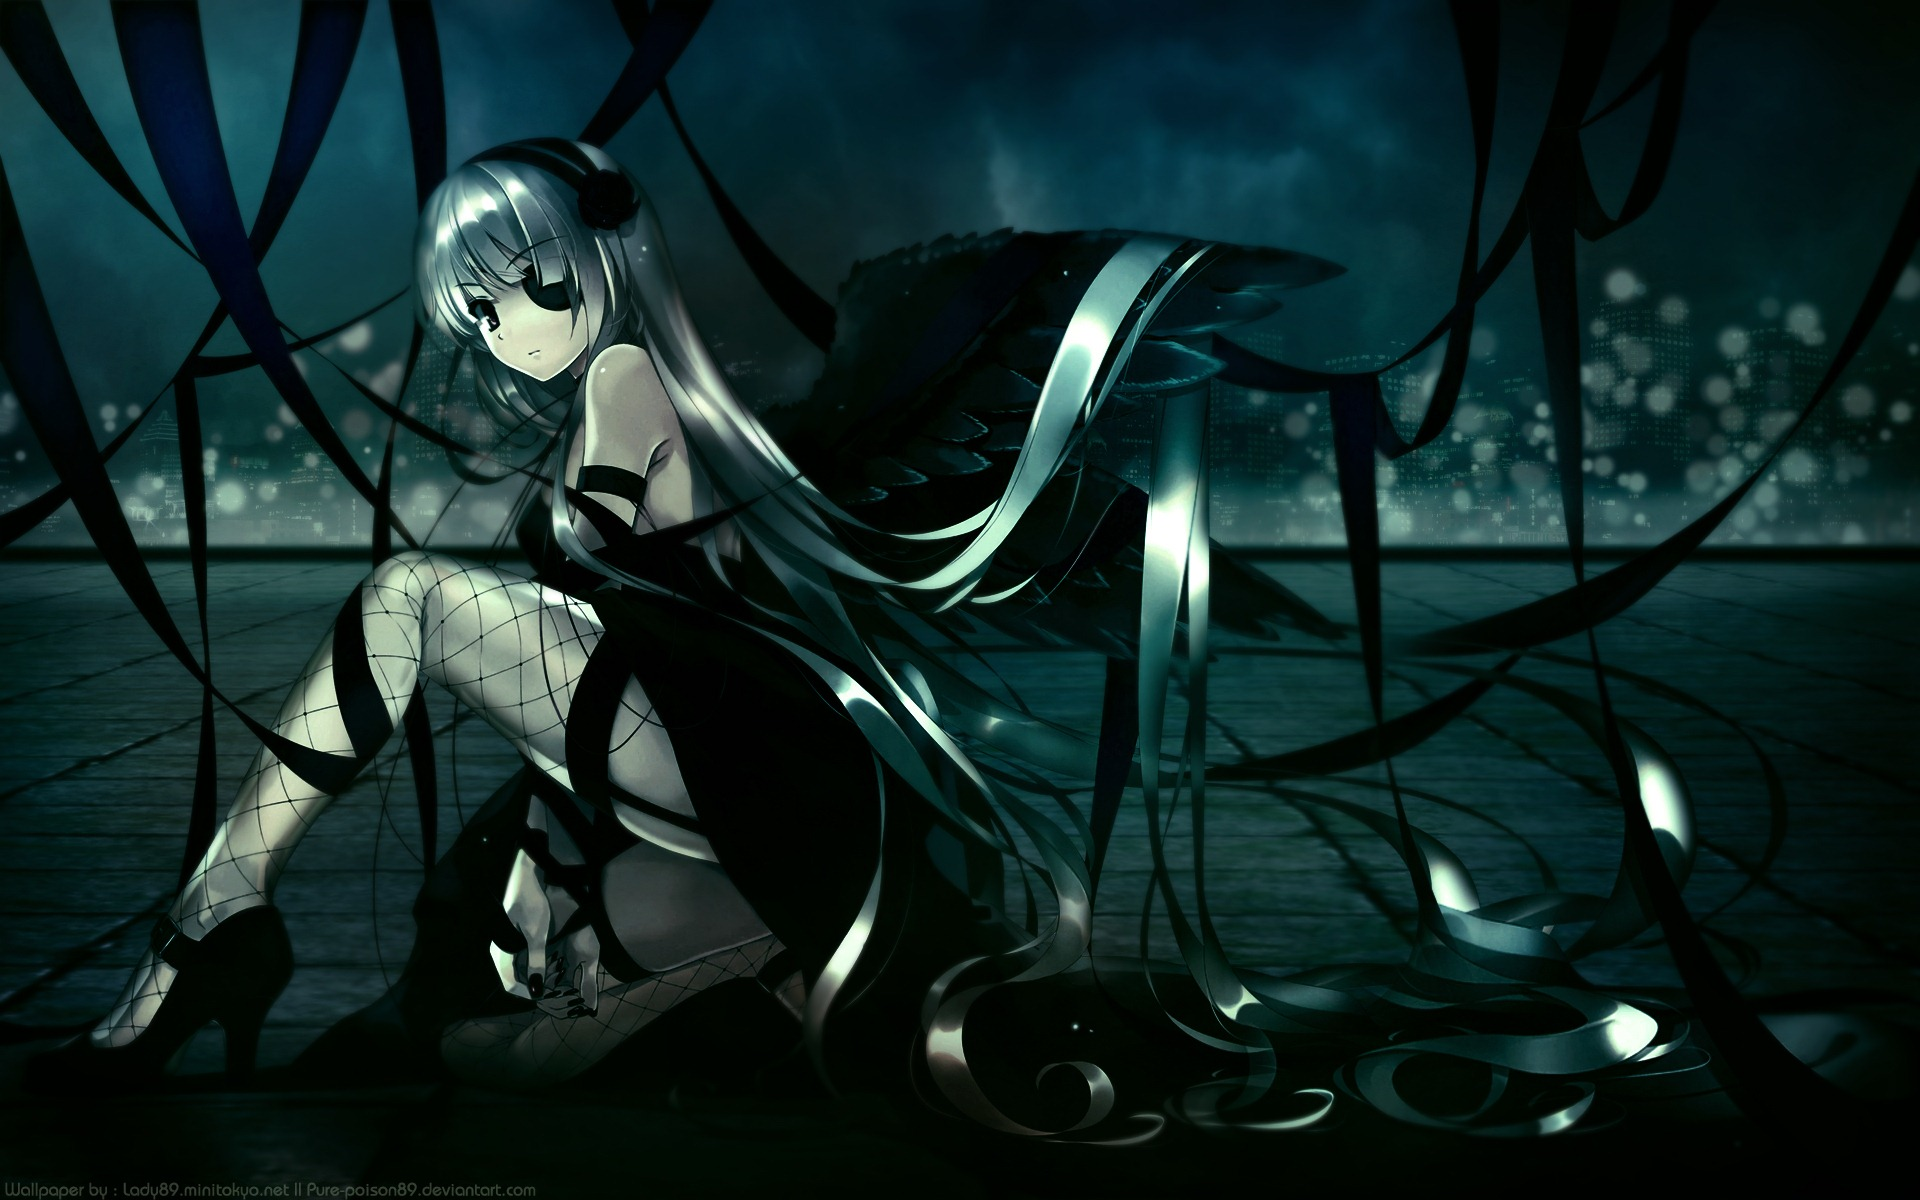 Download Dark Anime Wallpaper 1920x1200 | Full HD Wallpapers